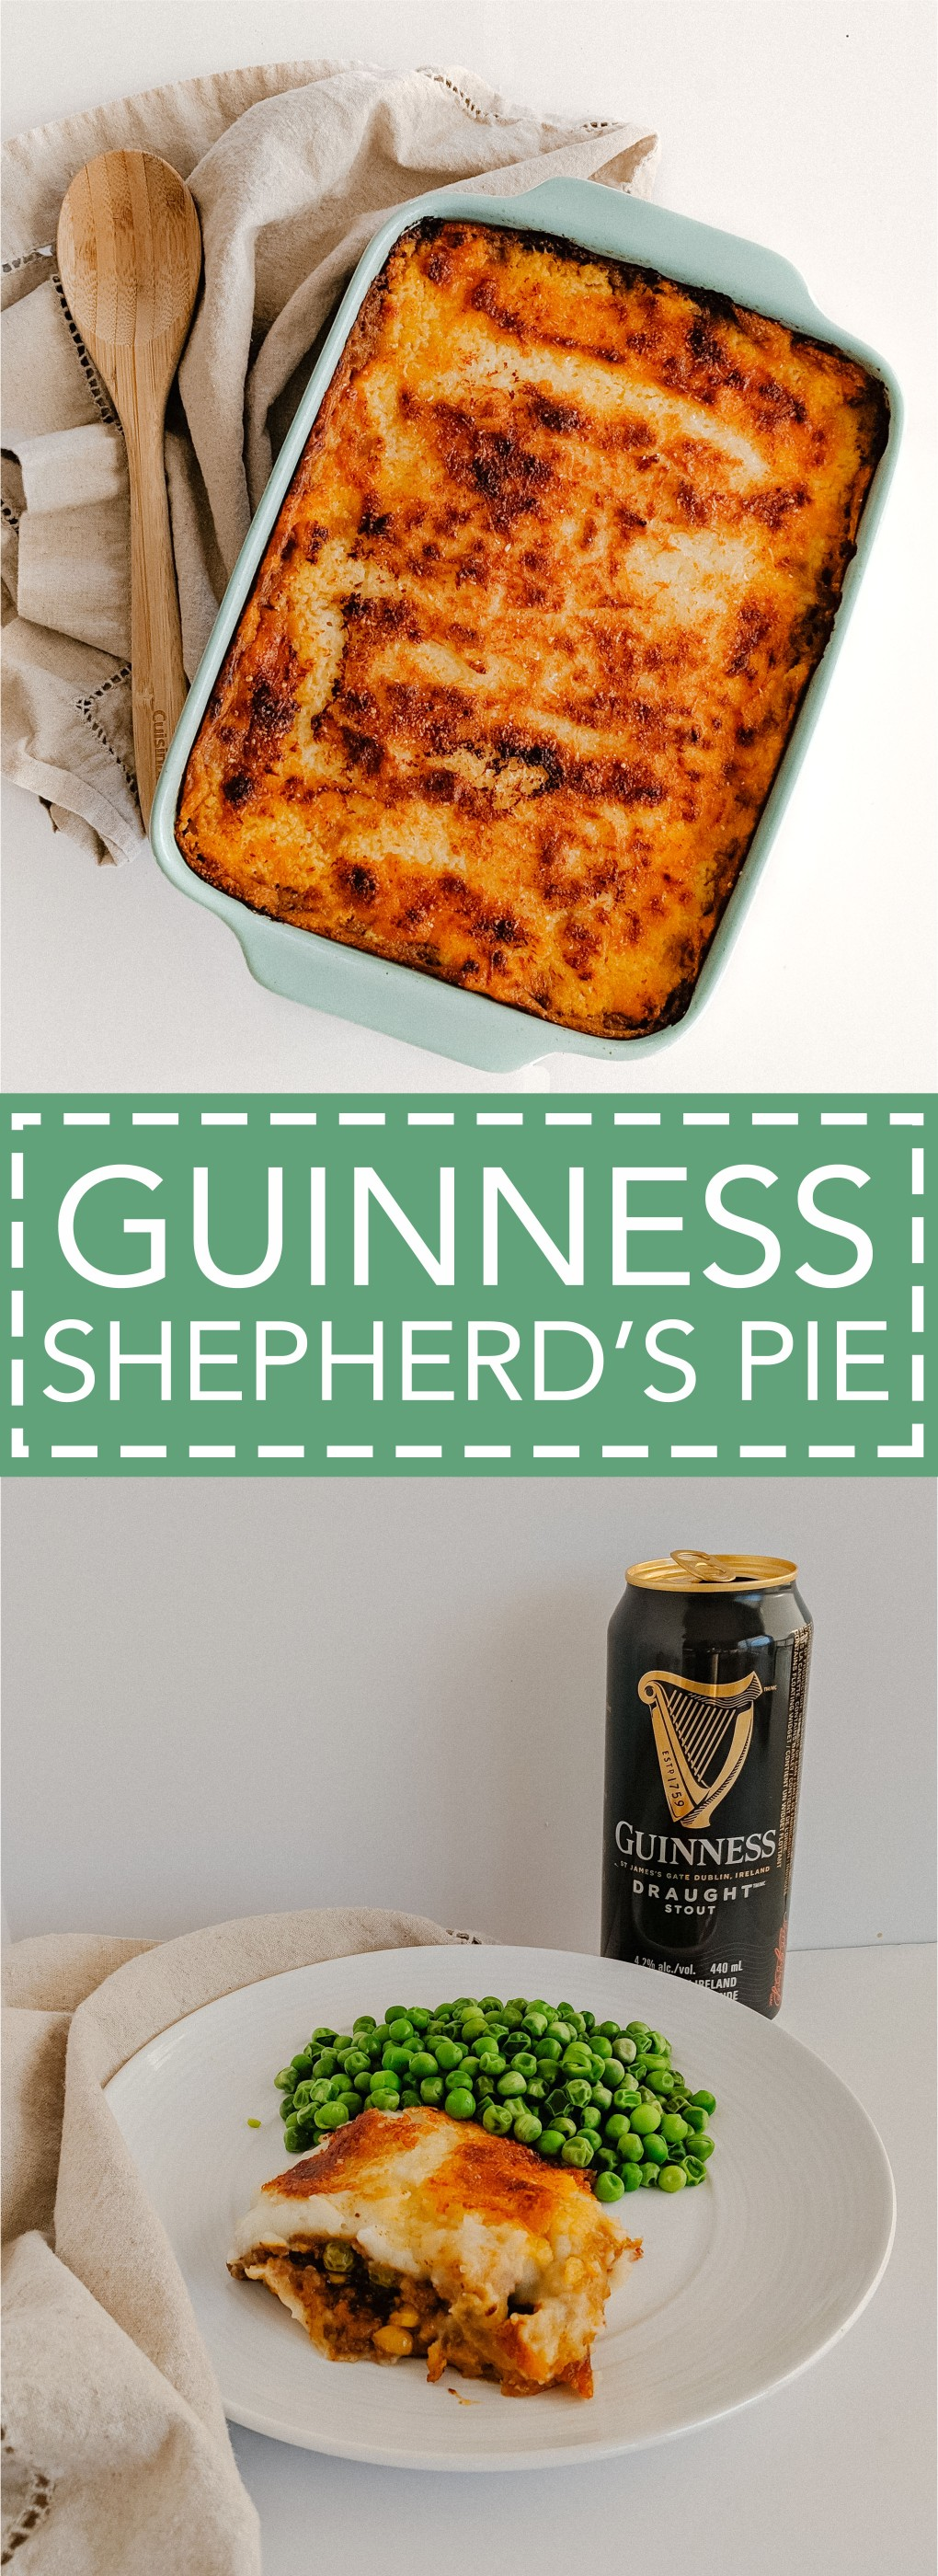 Guinness Shepherd's Pie - St. Patrick's Day Favourite, so delicious!.jpg